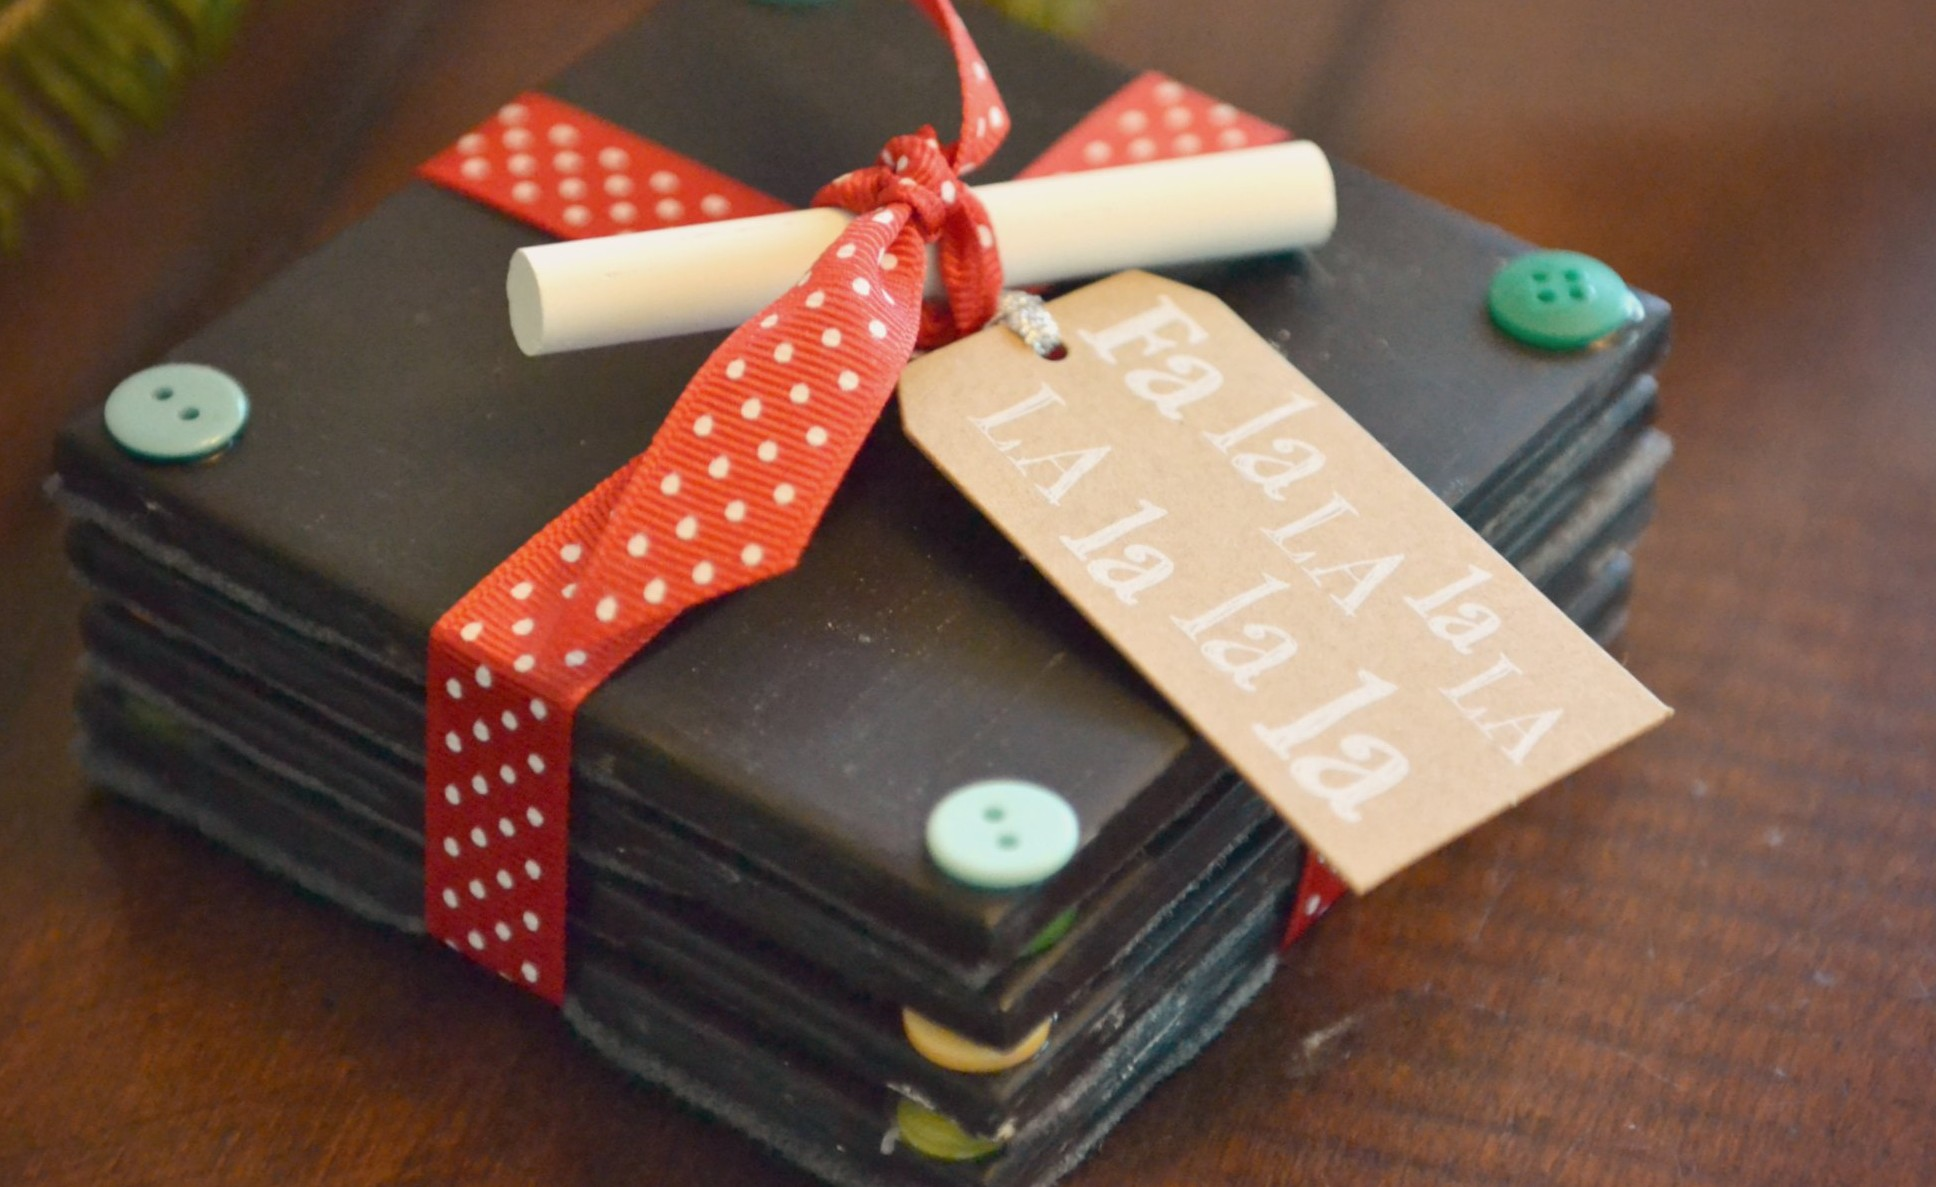 Diy chalkboard coaster set tutorial handmade gift idea Homemade christmas gifts